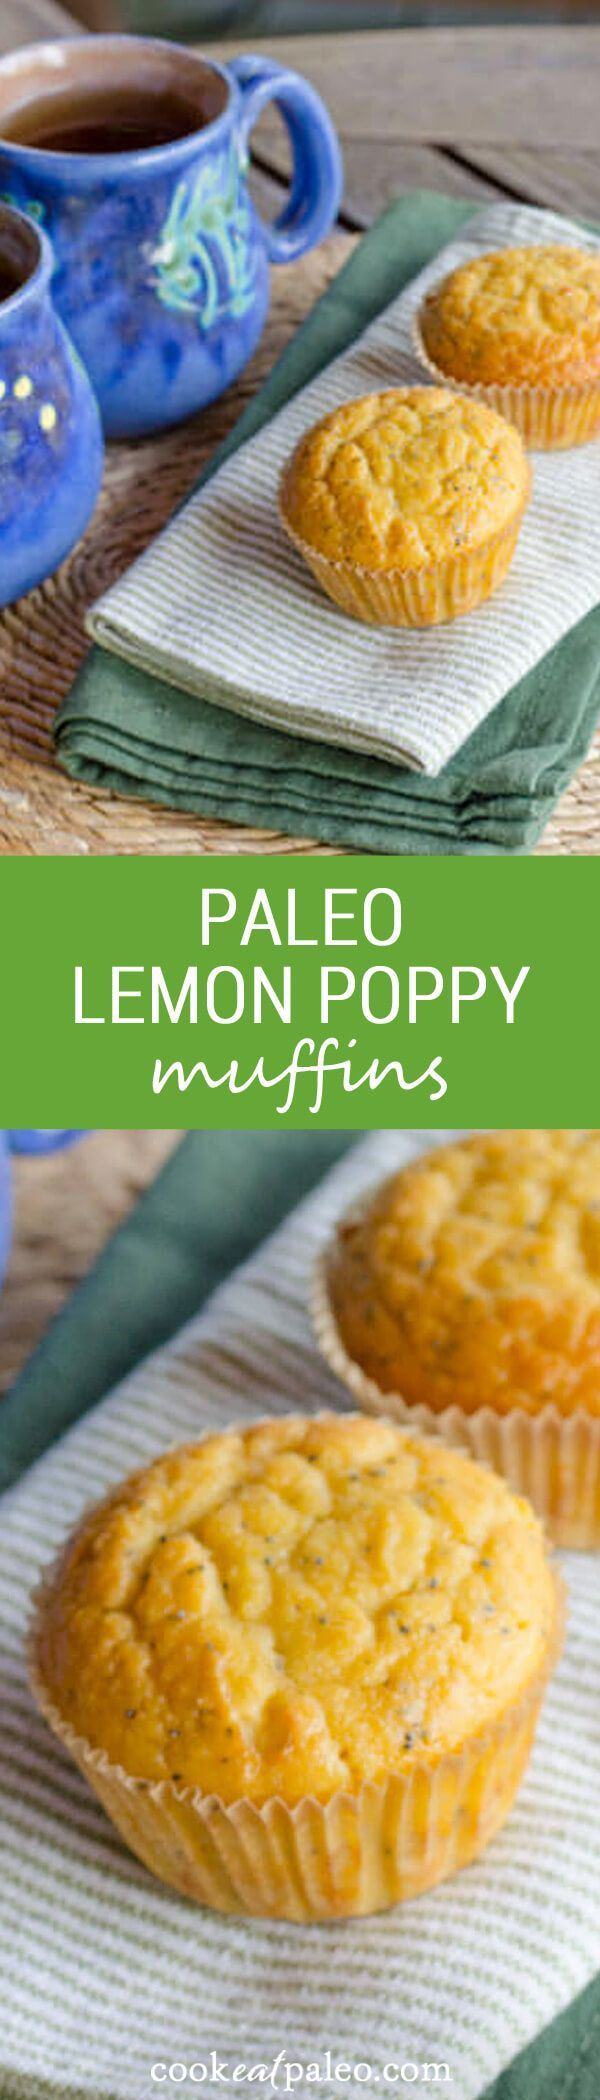 Lemon poppy paleo muffins are quick and easy gluten-free recipe. Just add…